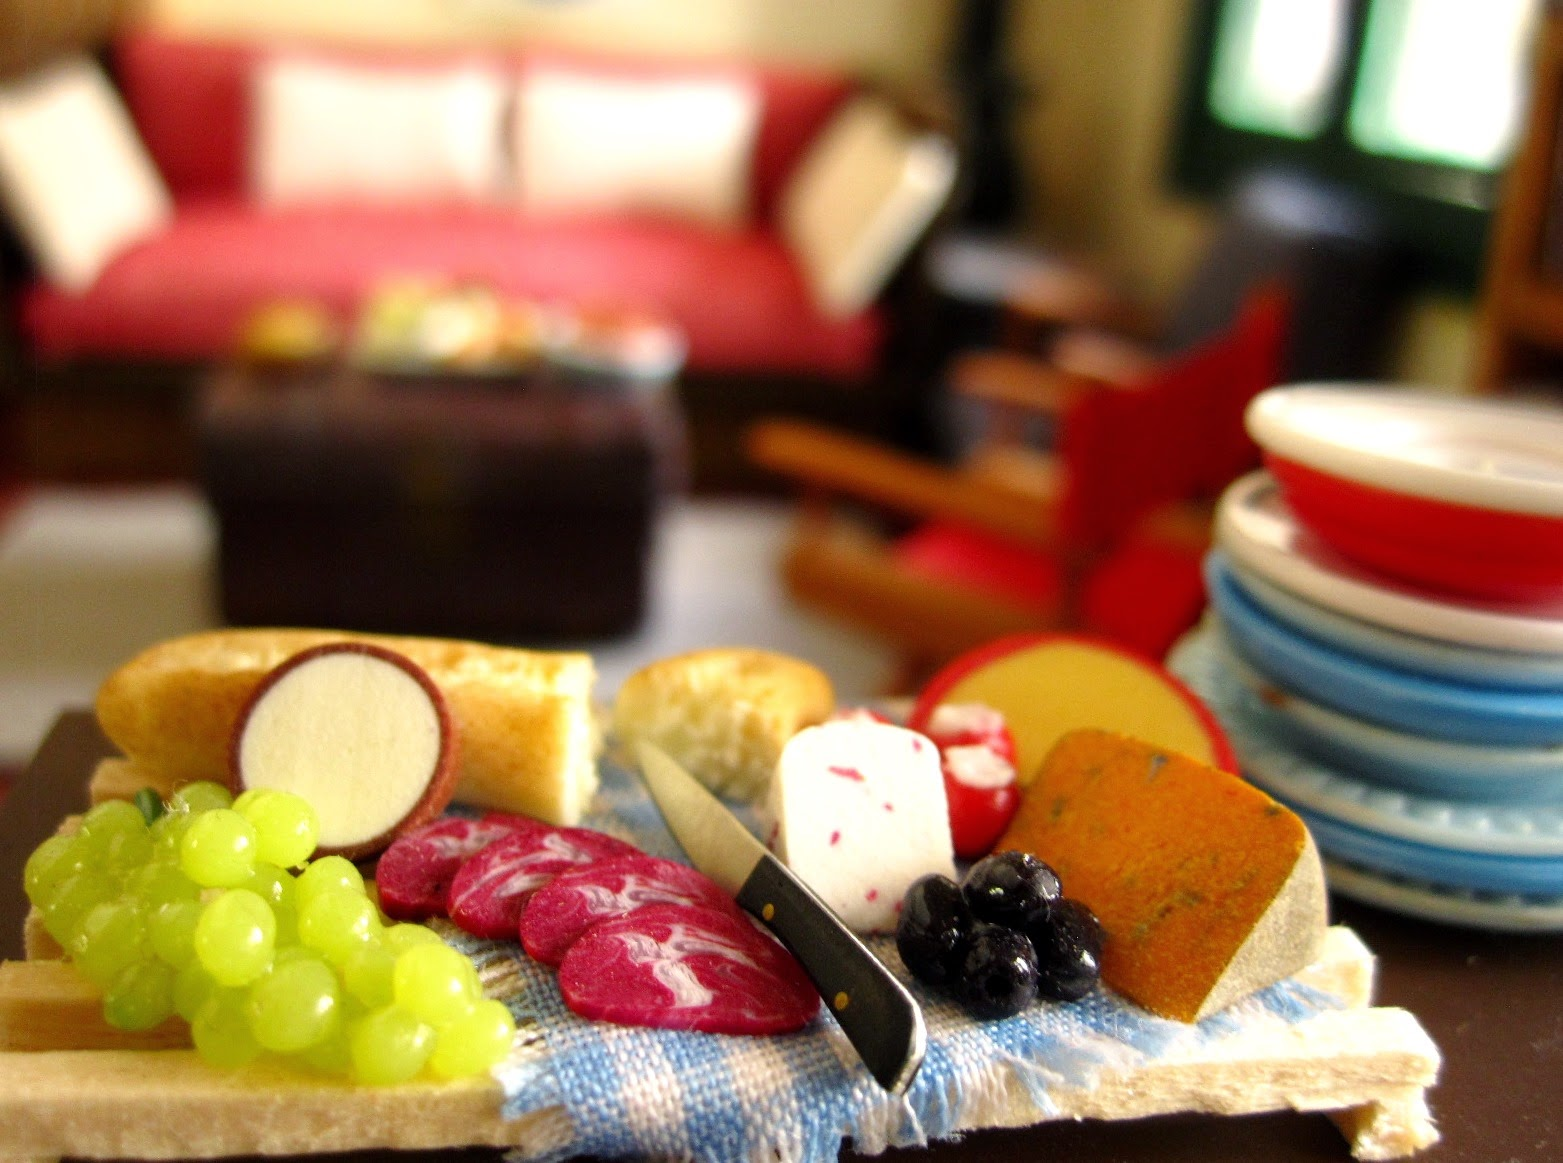 Miniature dolls' house cheese platter on a table next to a pile of plates, In the background is a seating area.